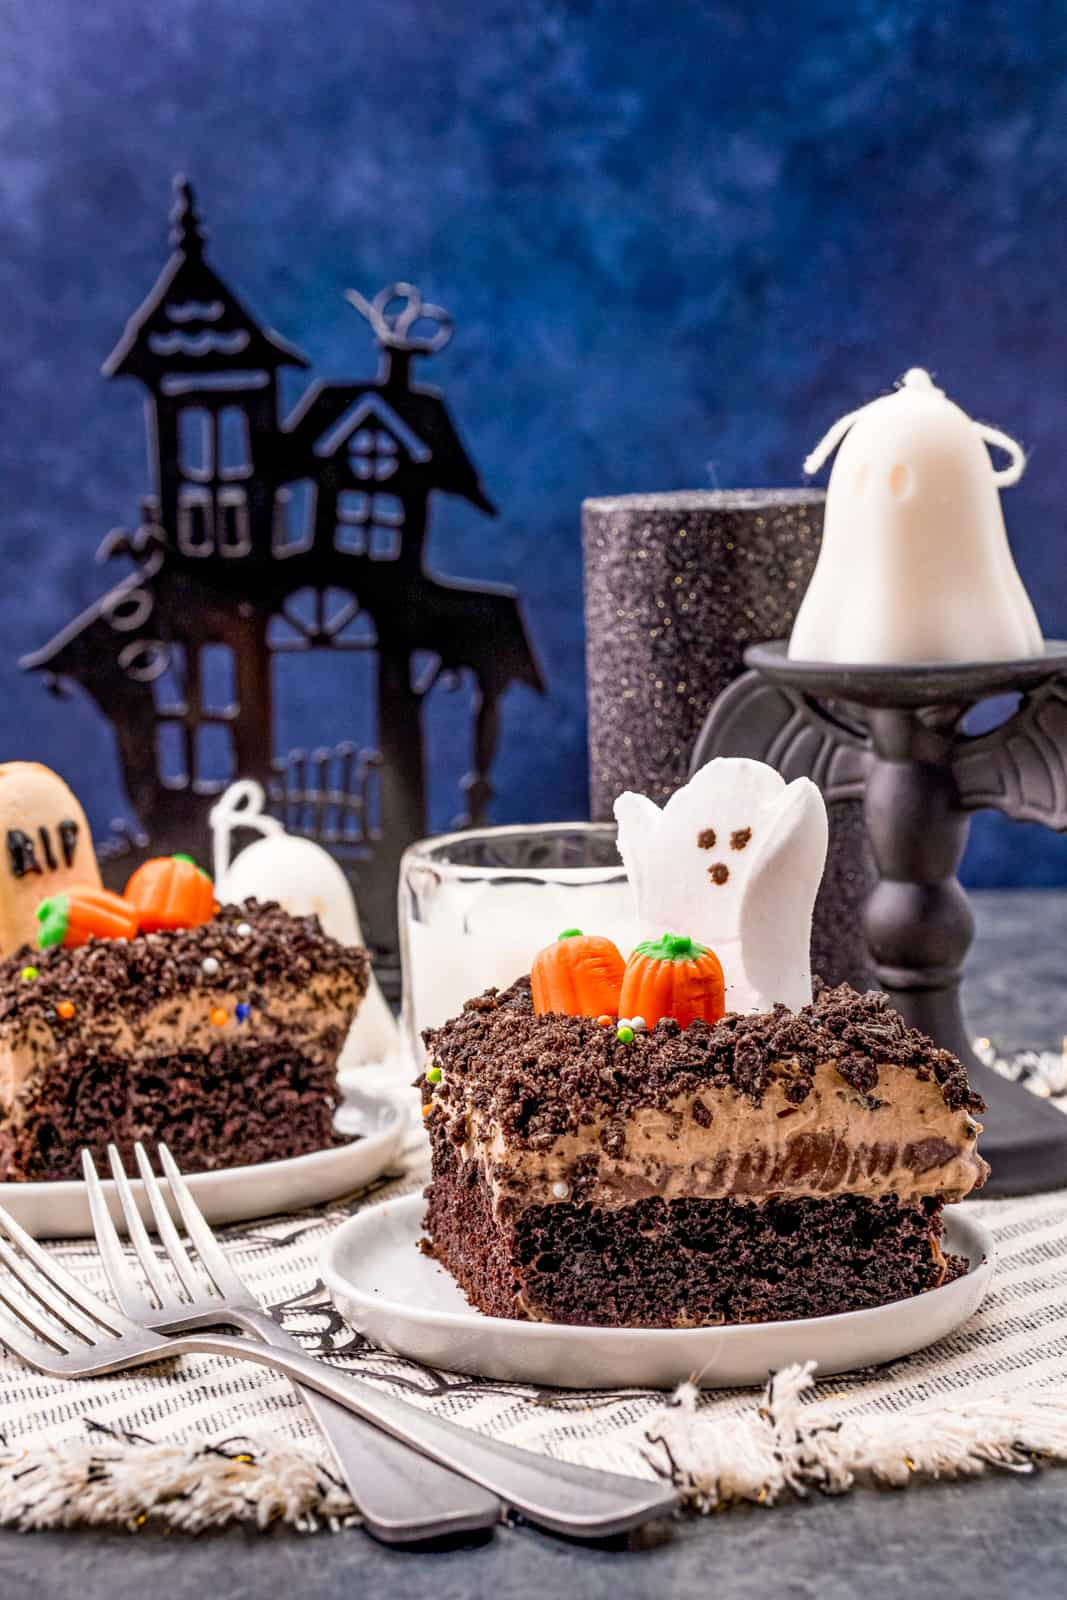 Two slices of Halloween Dirt Cake on plates with forks in front.